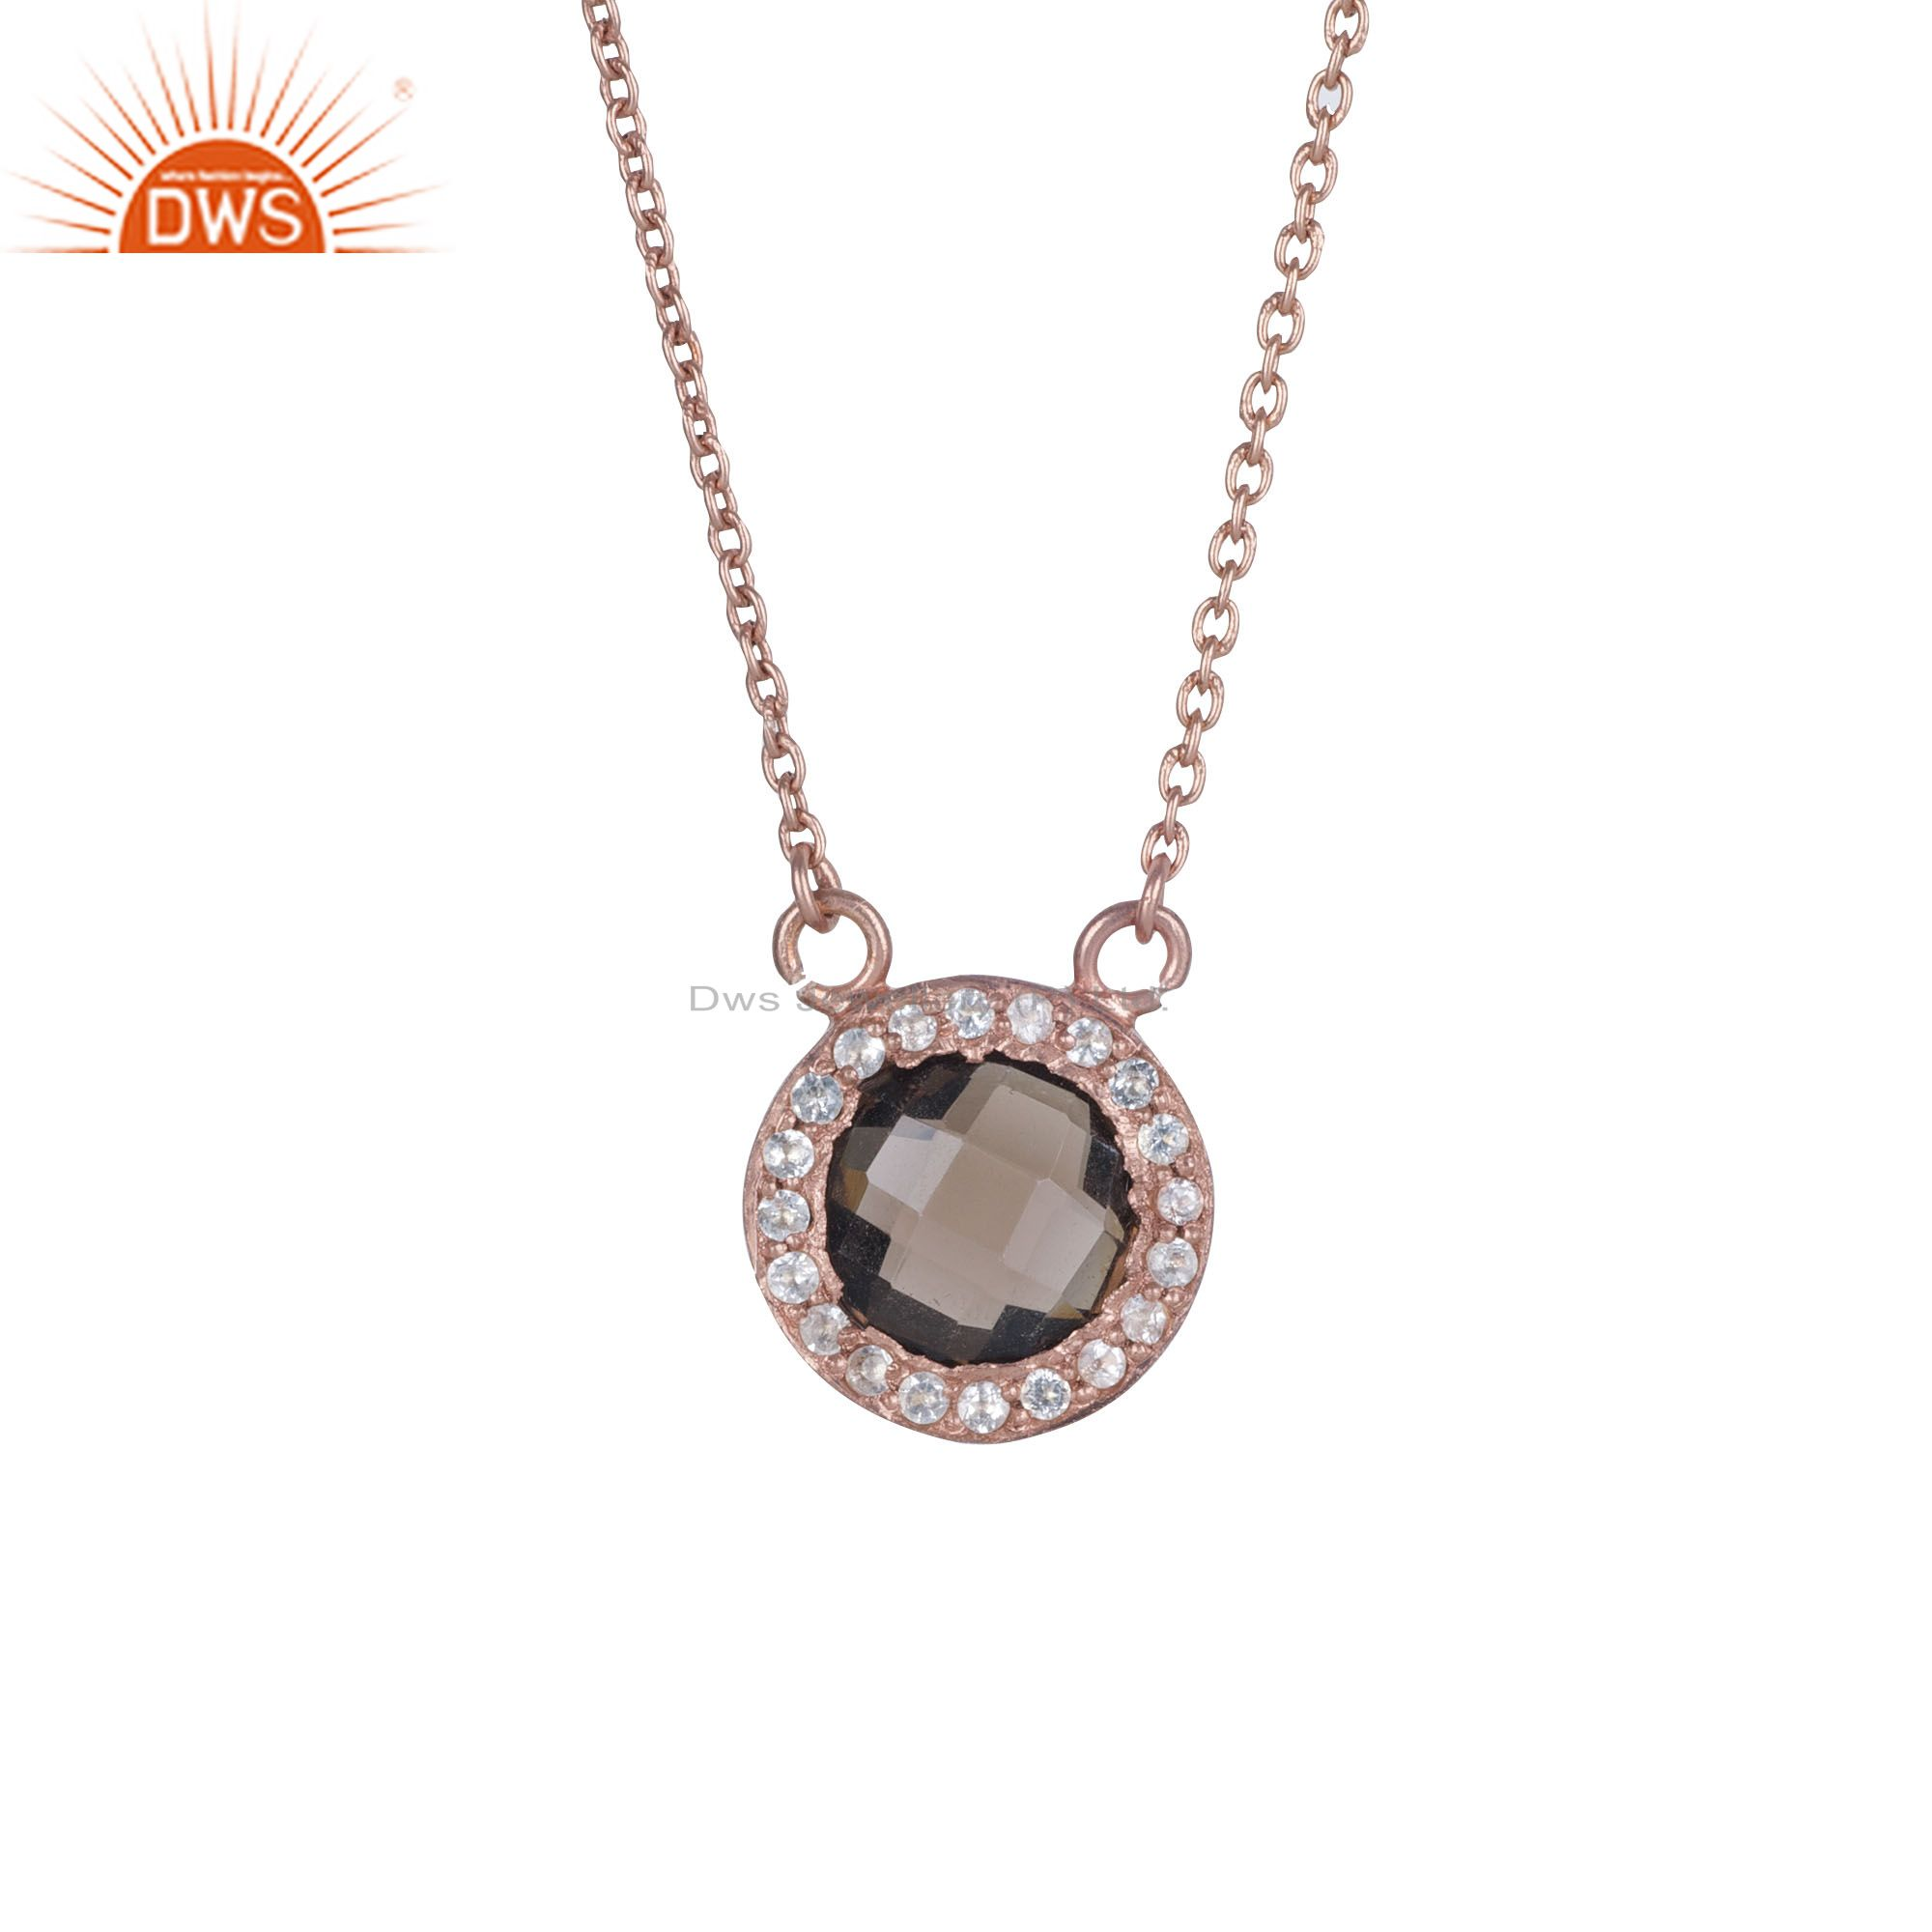 18K Rose Gold Plated Silver Smoky Quartz And White Topaz Pendant Chain Necklace